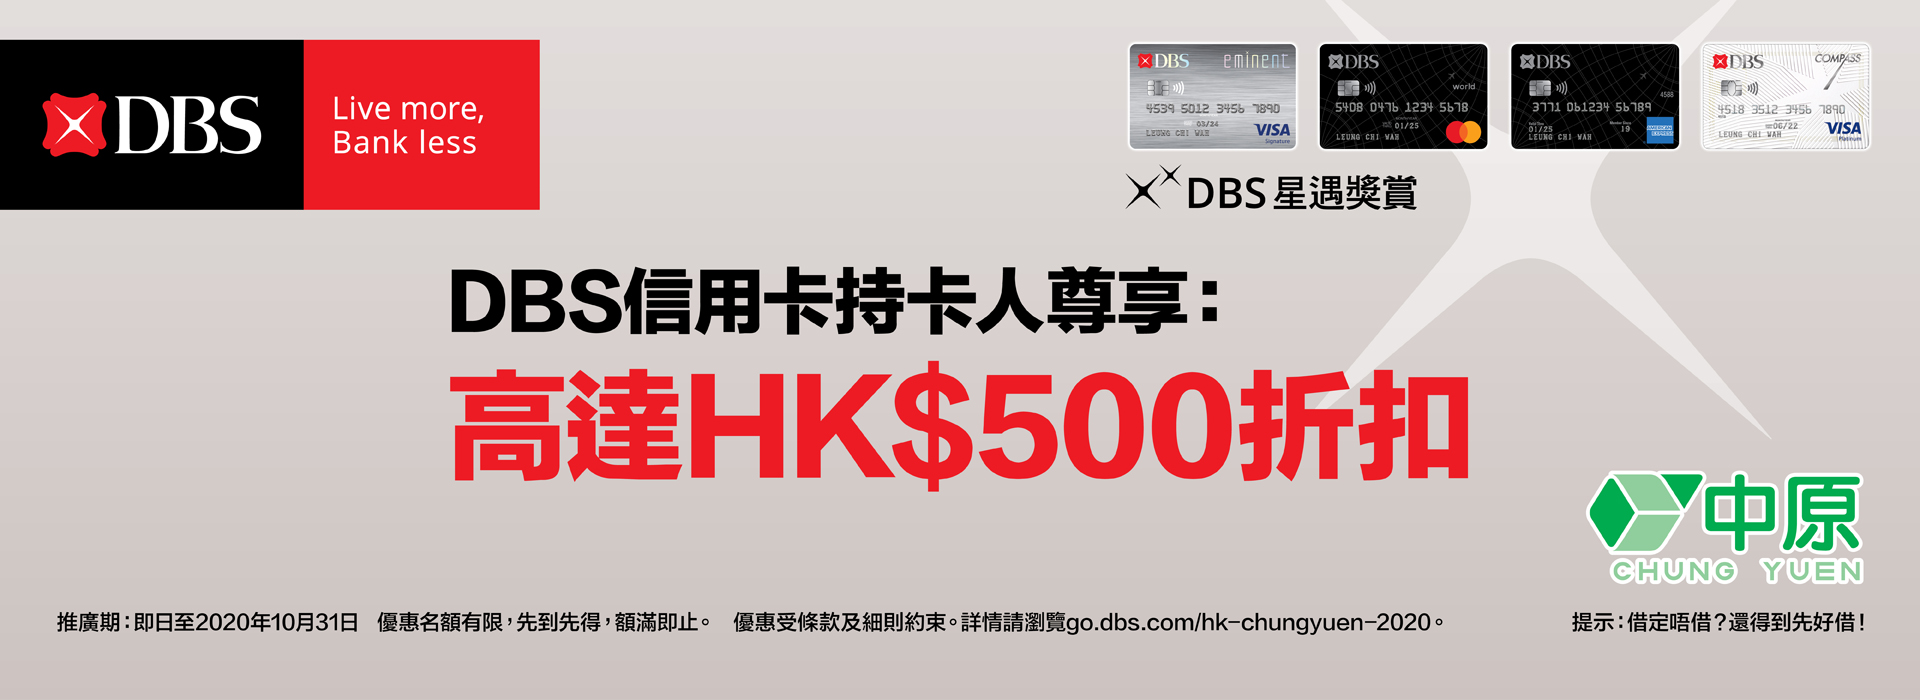 DBS  Promotion 2020 Sep-Oct